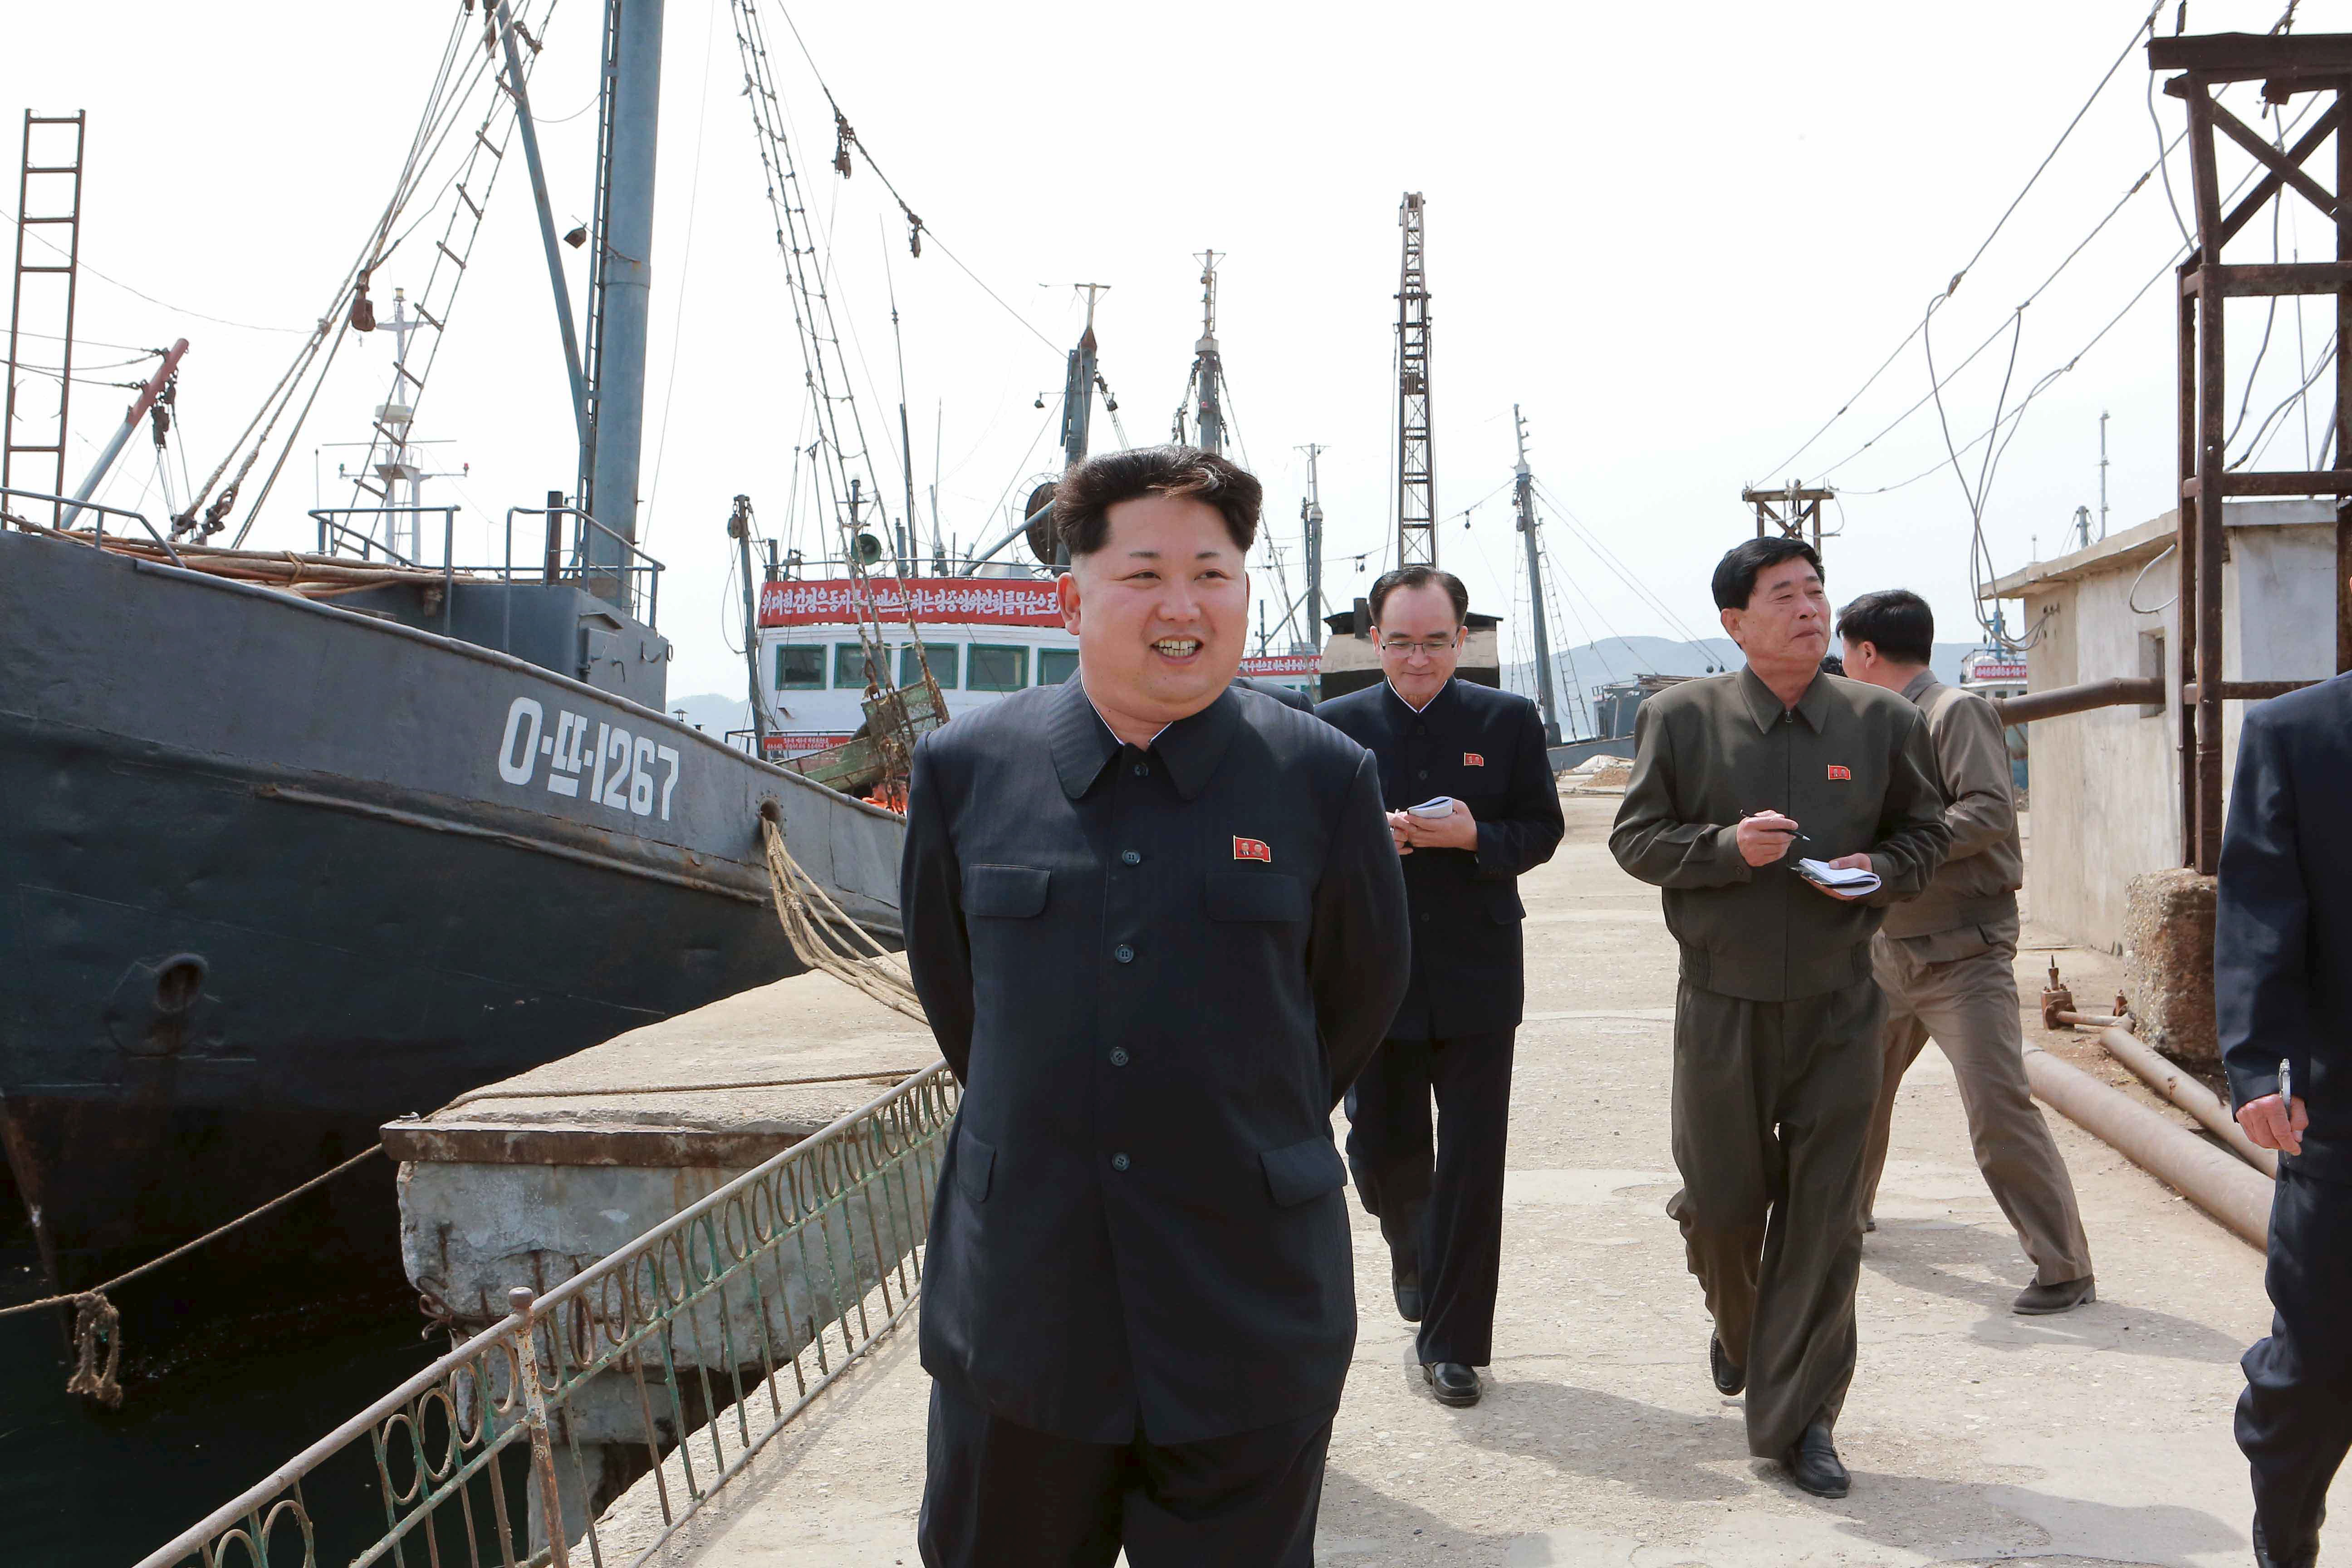 North Korean leader Kim Jong Un provides field guidance at the Sinpho Pelagic Fishery Complex, in this undated photo released by North Korea's Korean Central News Agency (KCNA) in Pyongyang on May 9, 2015.